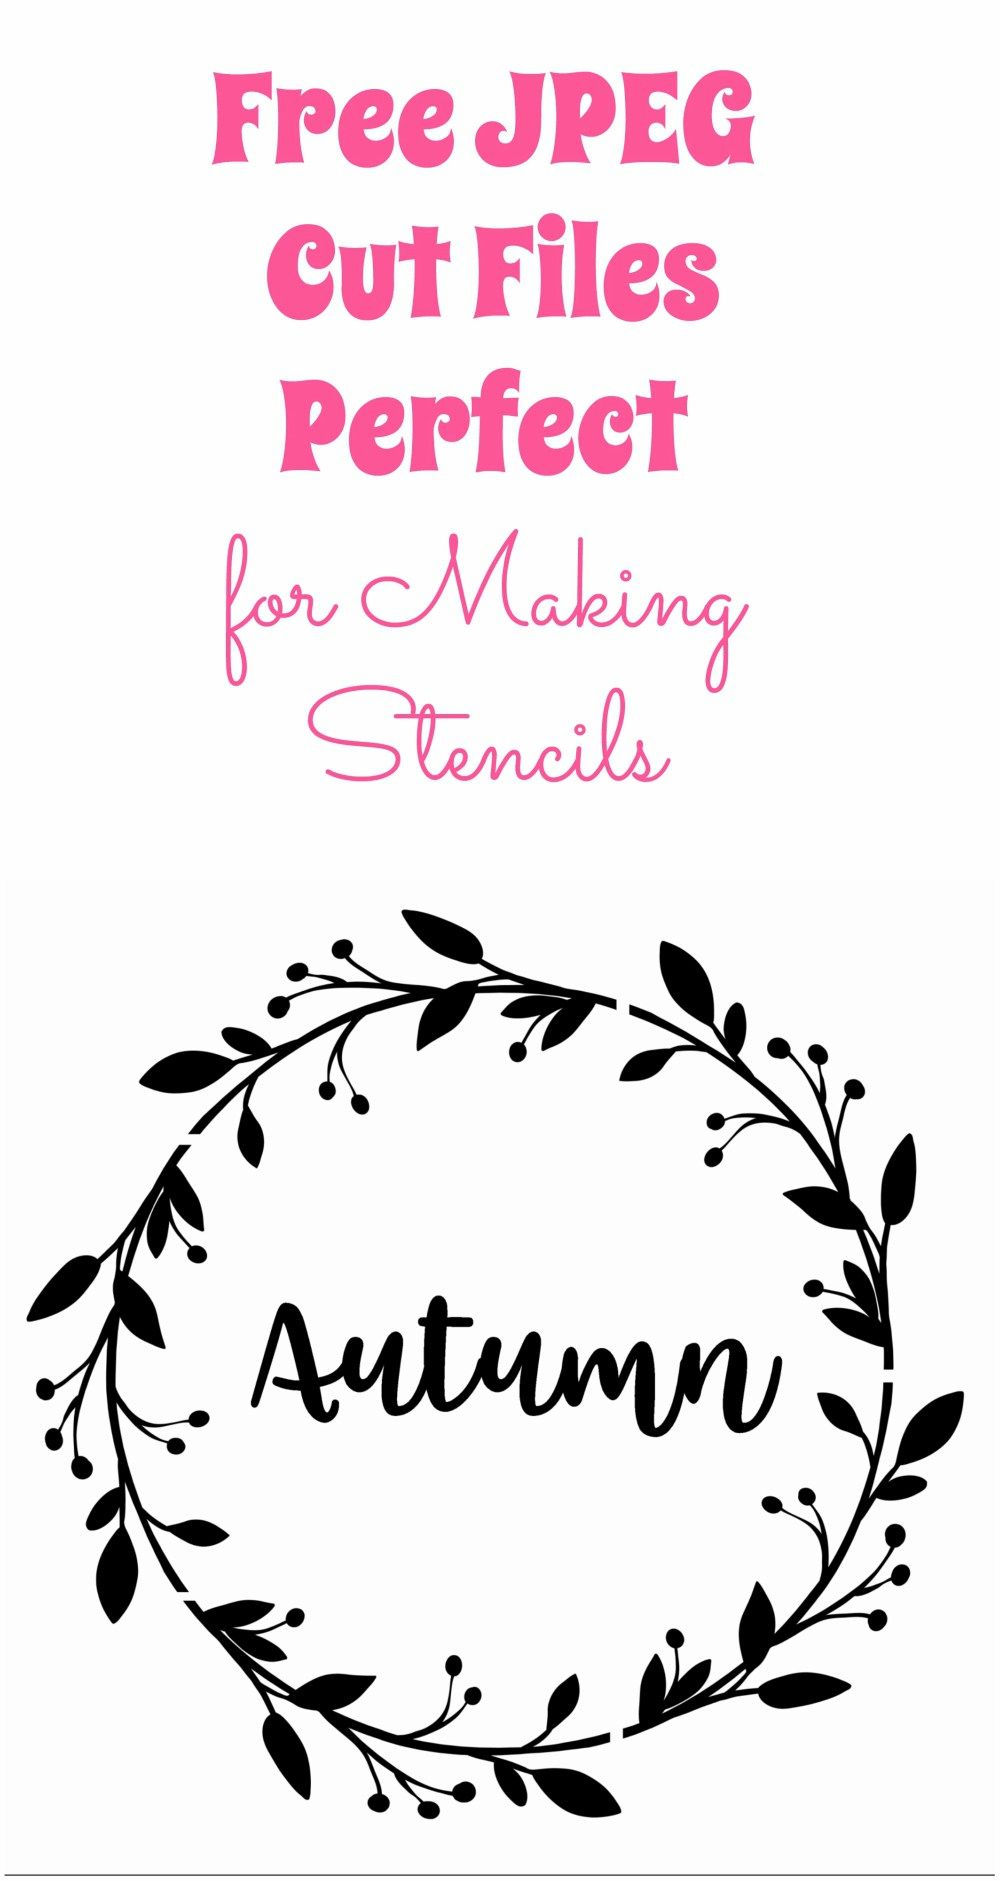 Free jpeg files perfect for making stencils how to make